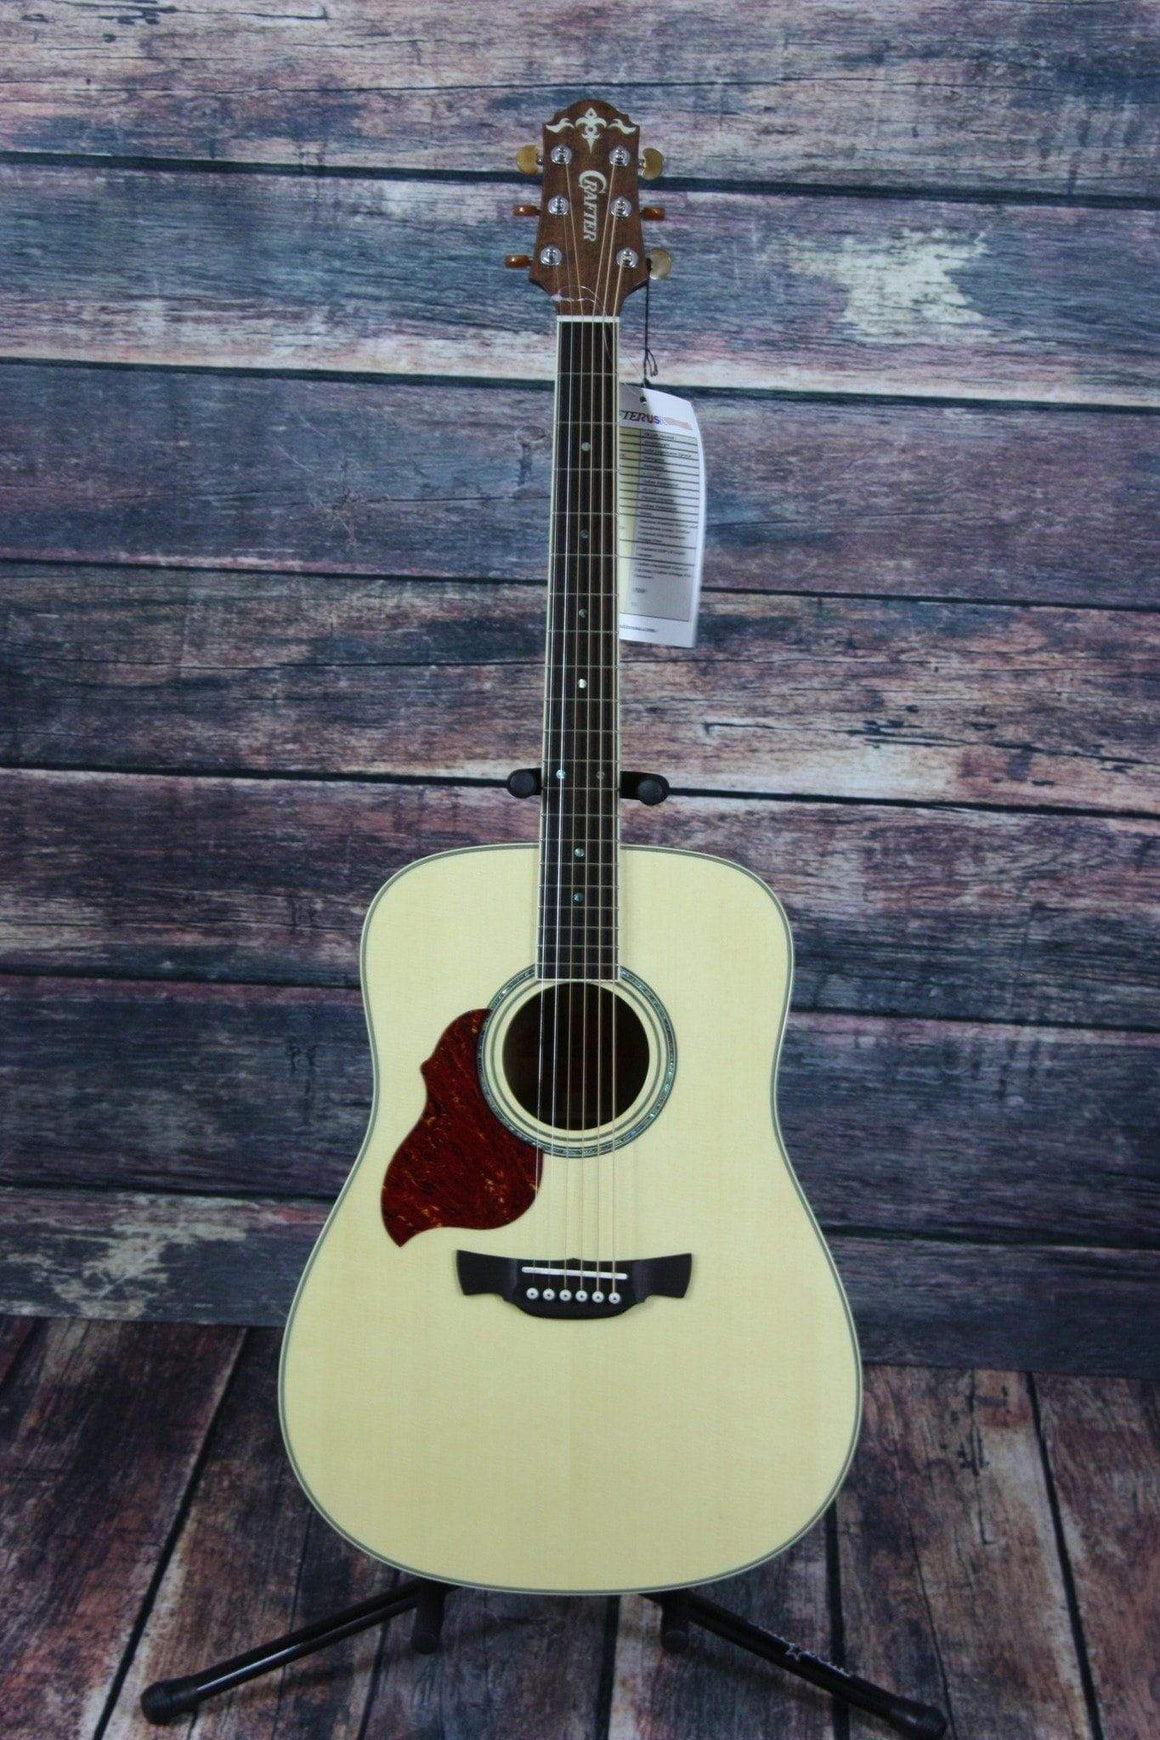 Crafter Acoustic Guitar Guitar Only Crafter Left Handed D8/N Acoustic Guitar